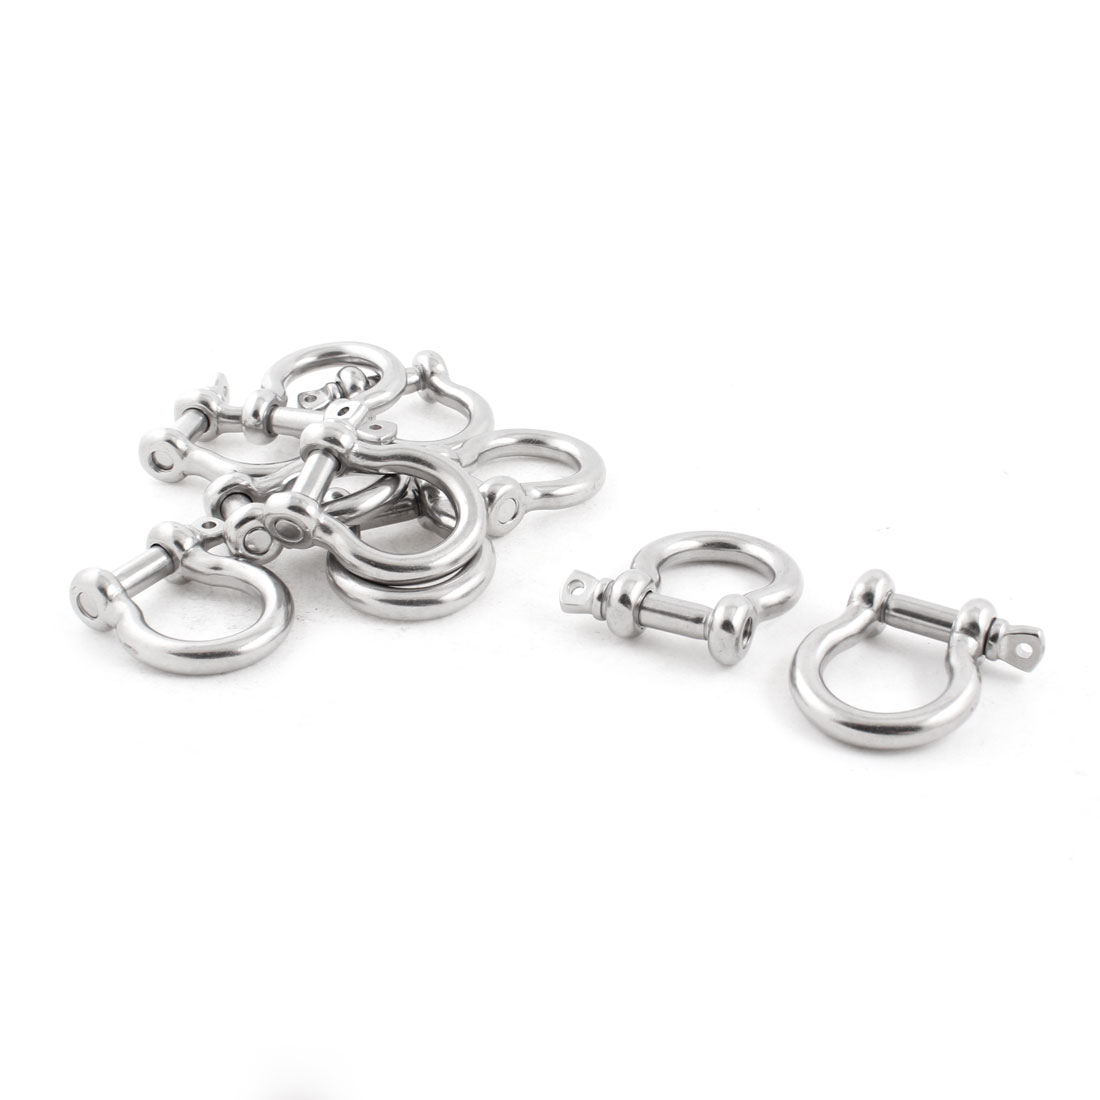 10 PCS 10mm Stainless Steel Wire Rope Bow Shackles Fasteners